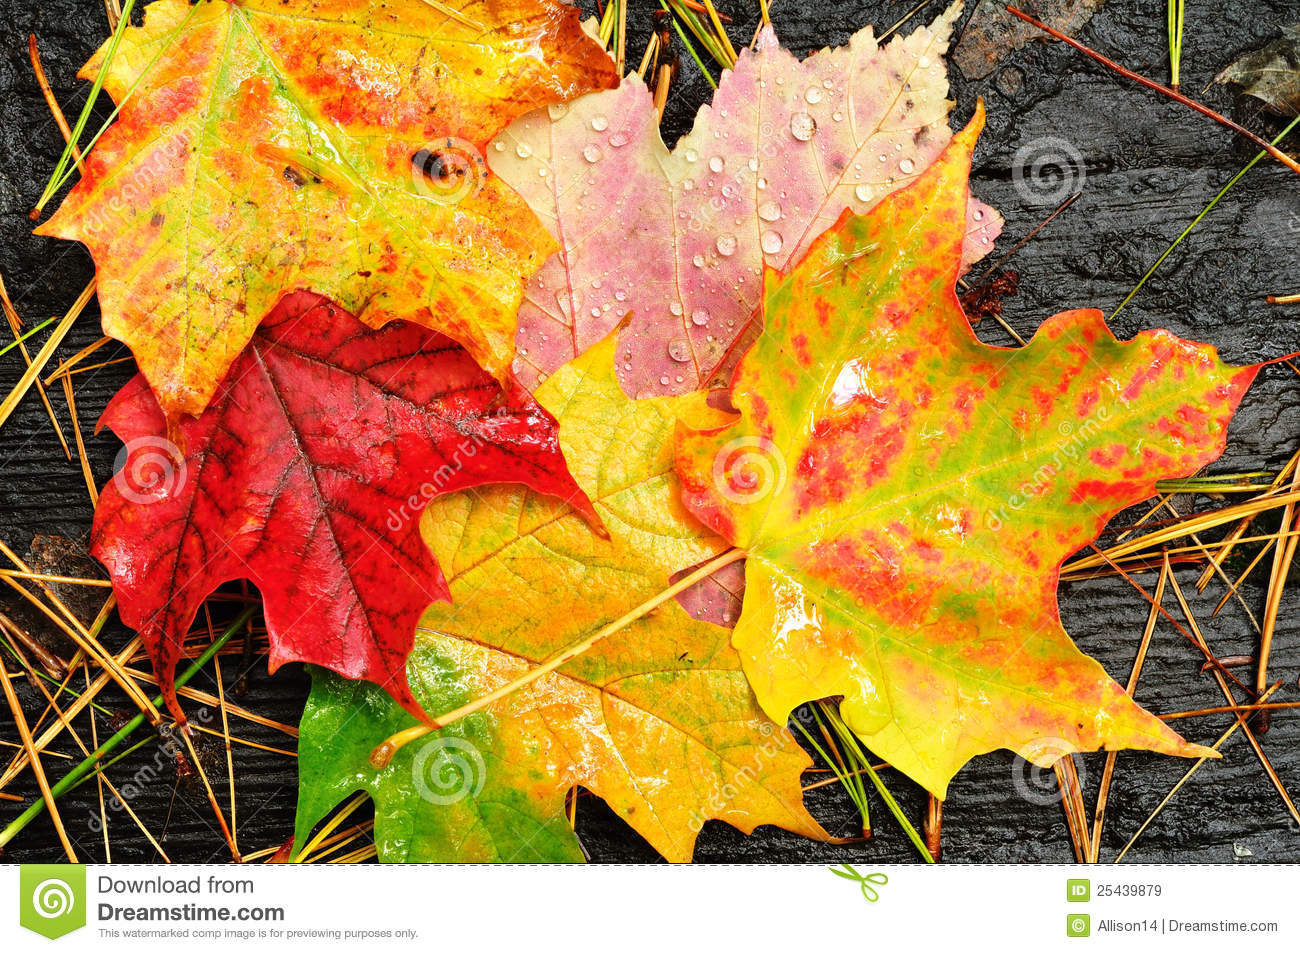 Fall Leaves Hd Wallpaper Close Up Of A Colorful Maple Leaves Stock Image Image Of